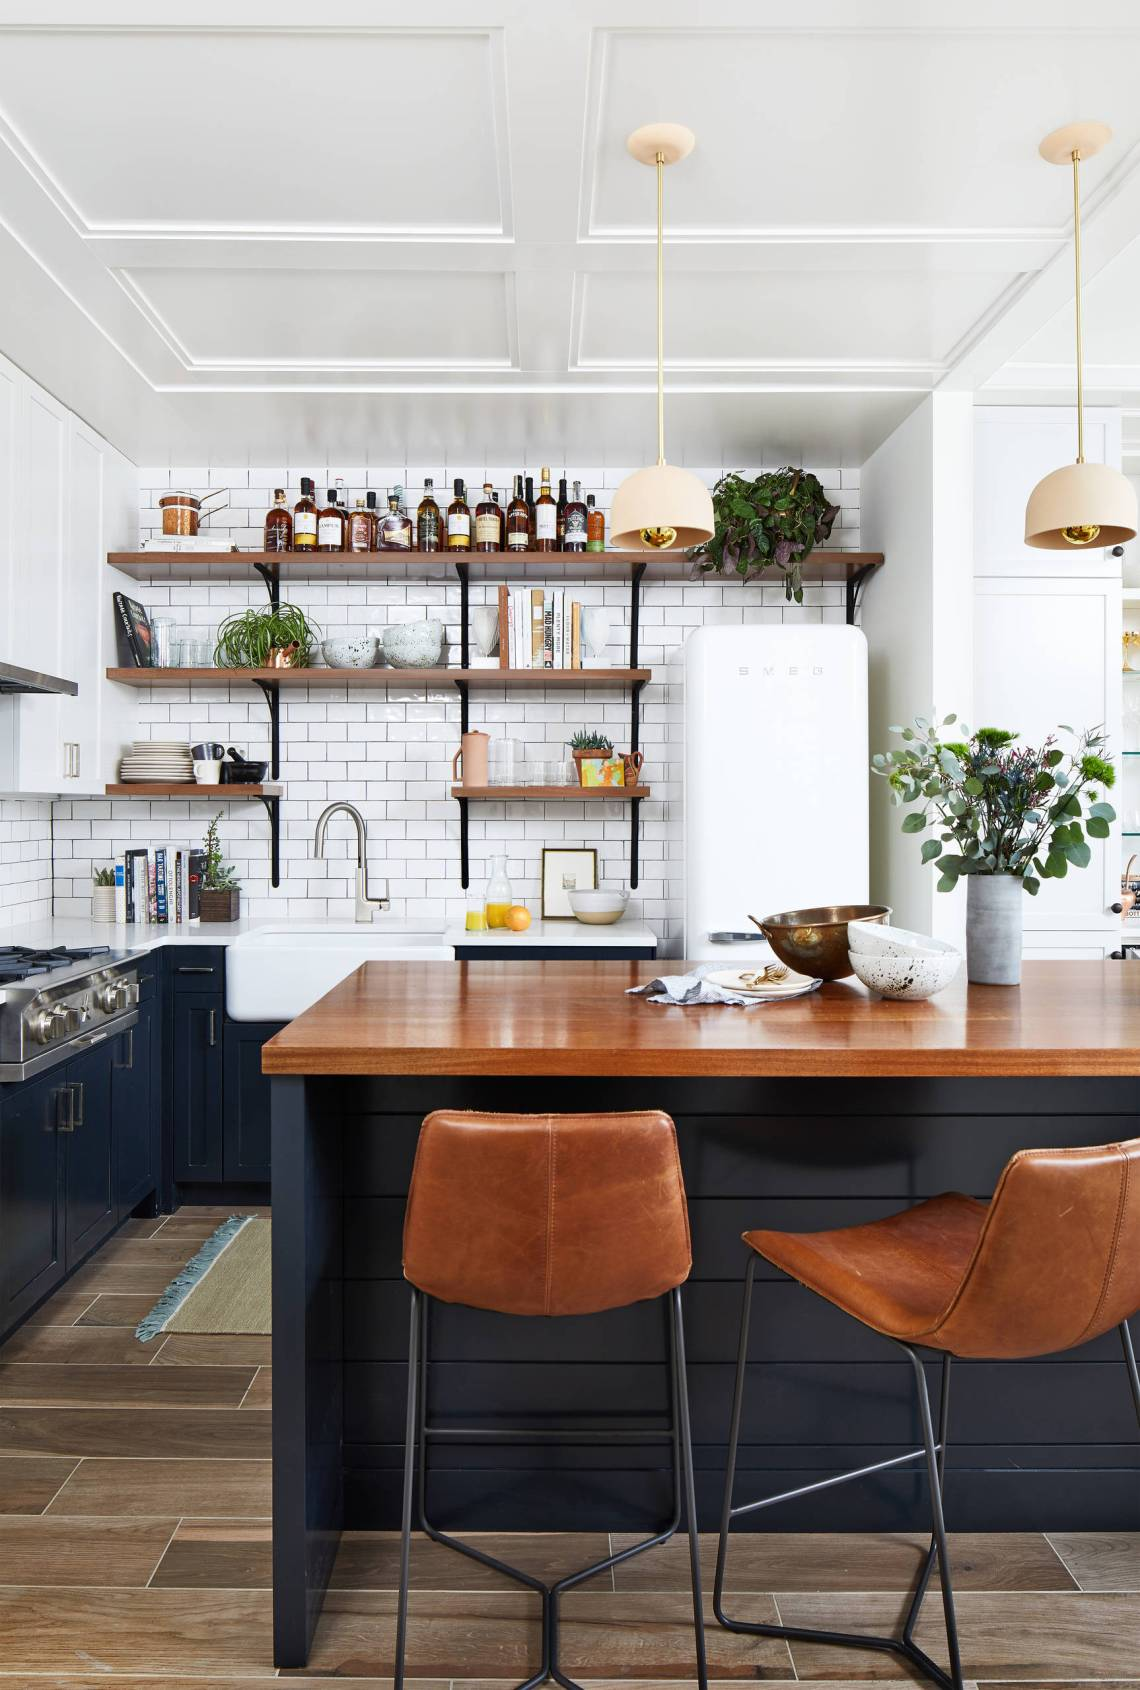 75 Beautiful Small L Shaped Kitchen Pictures Ideas August 2021 Houzz